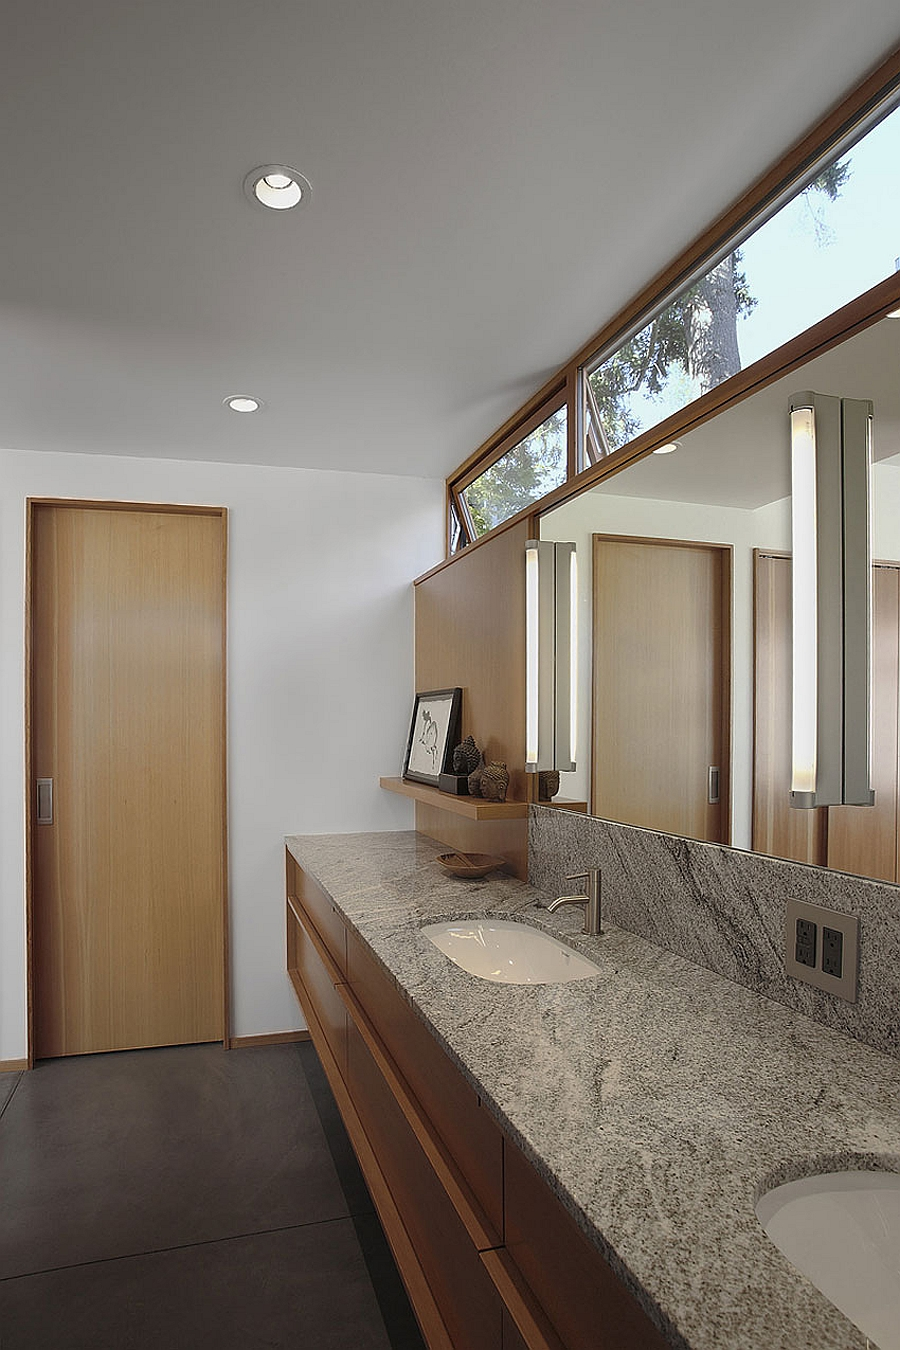 Contemporary bathroom with ample natural ventilation